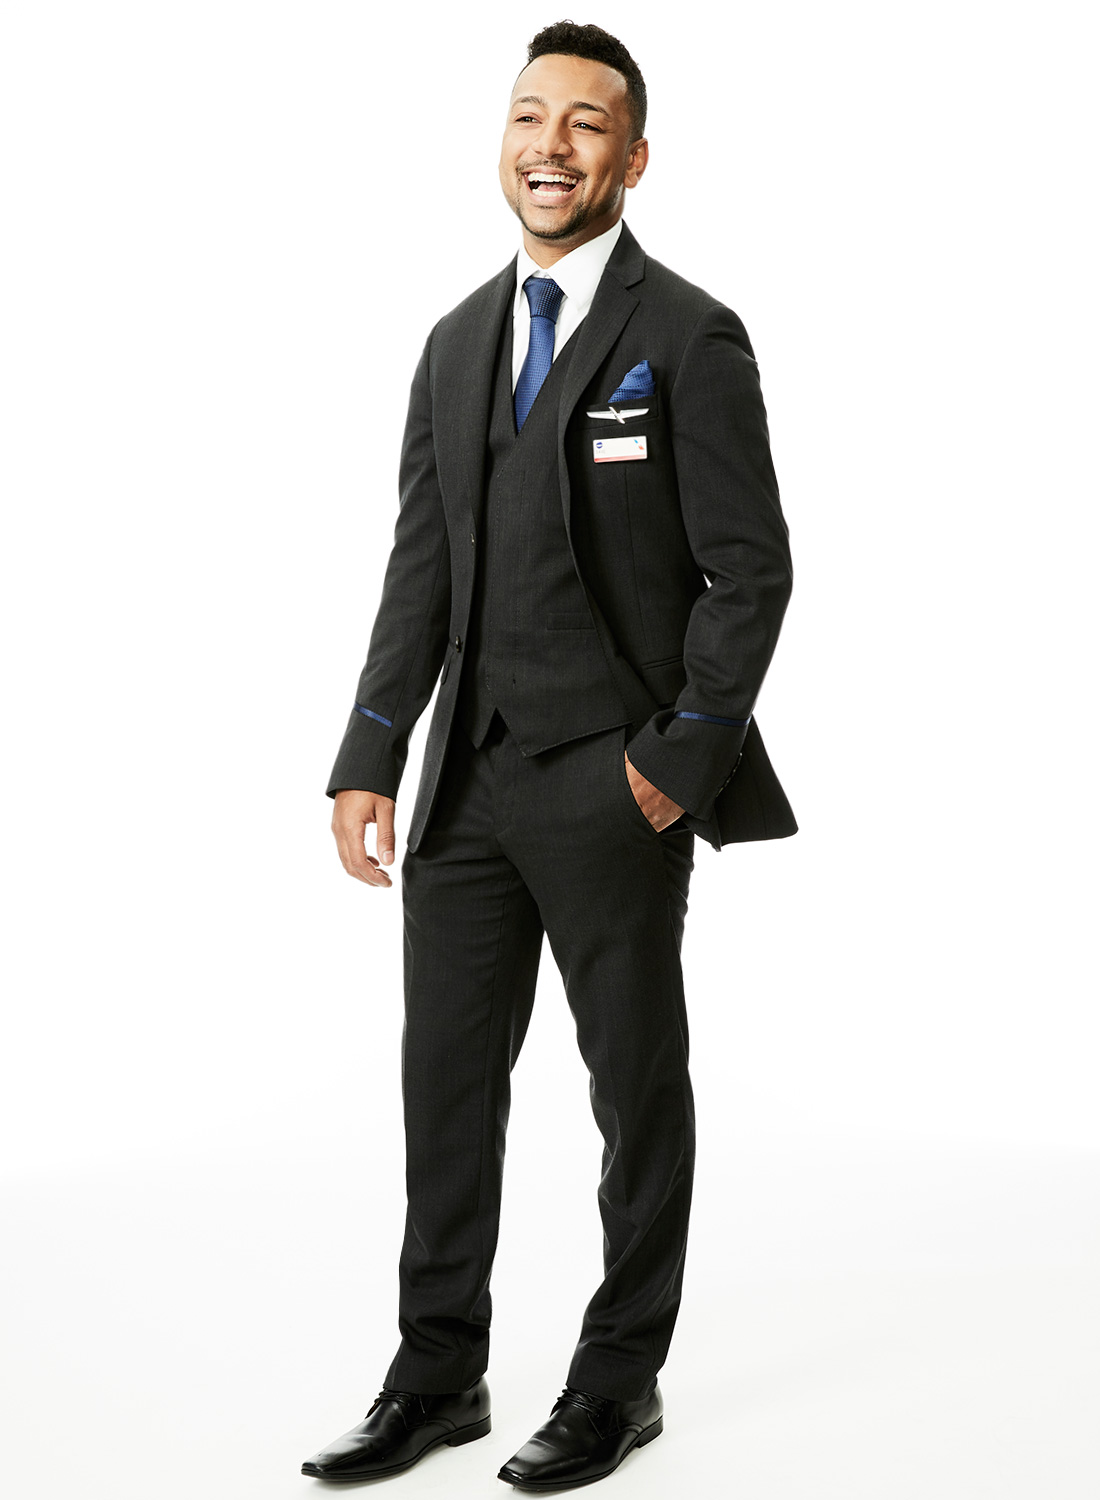 160920_AmericanAirlines_Portraits_By_BriJohnson_0013.jpg